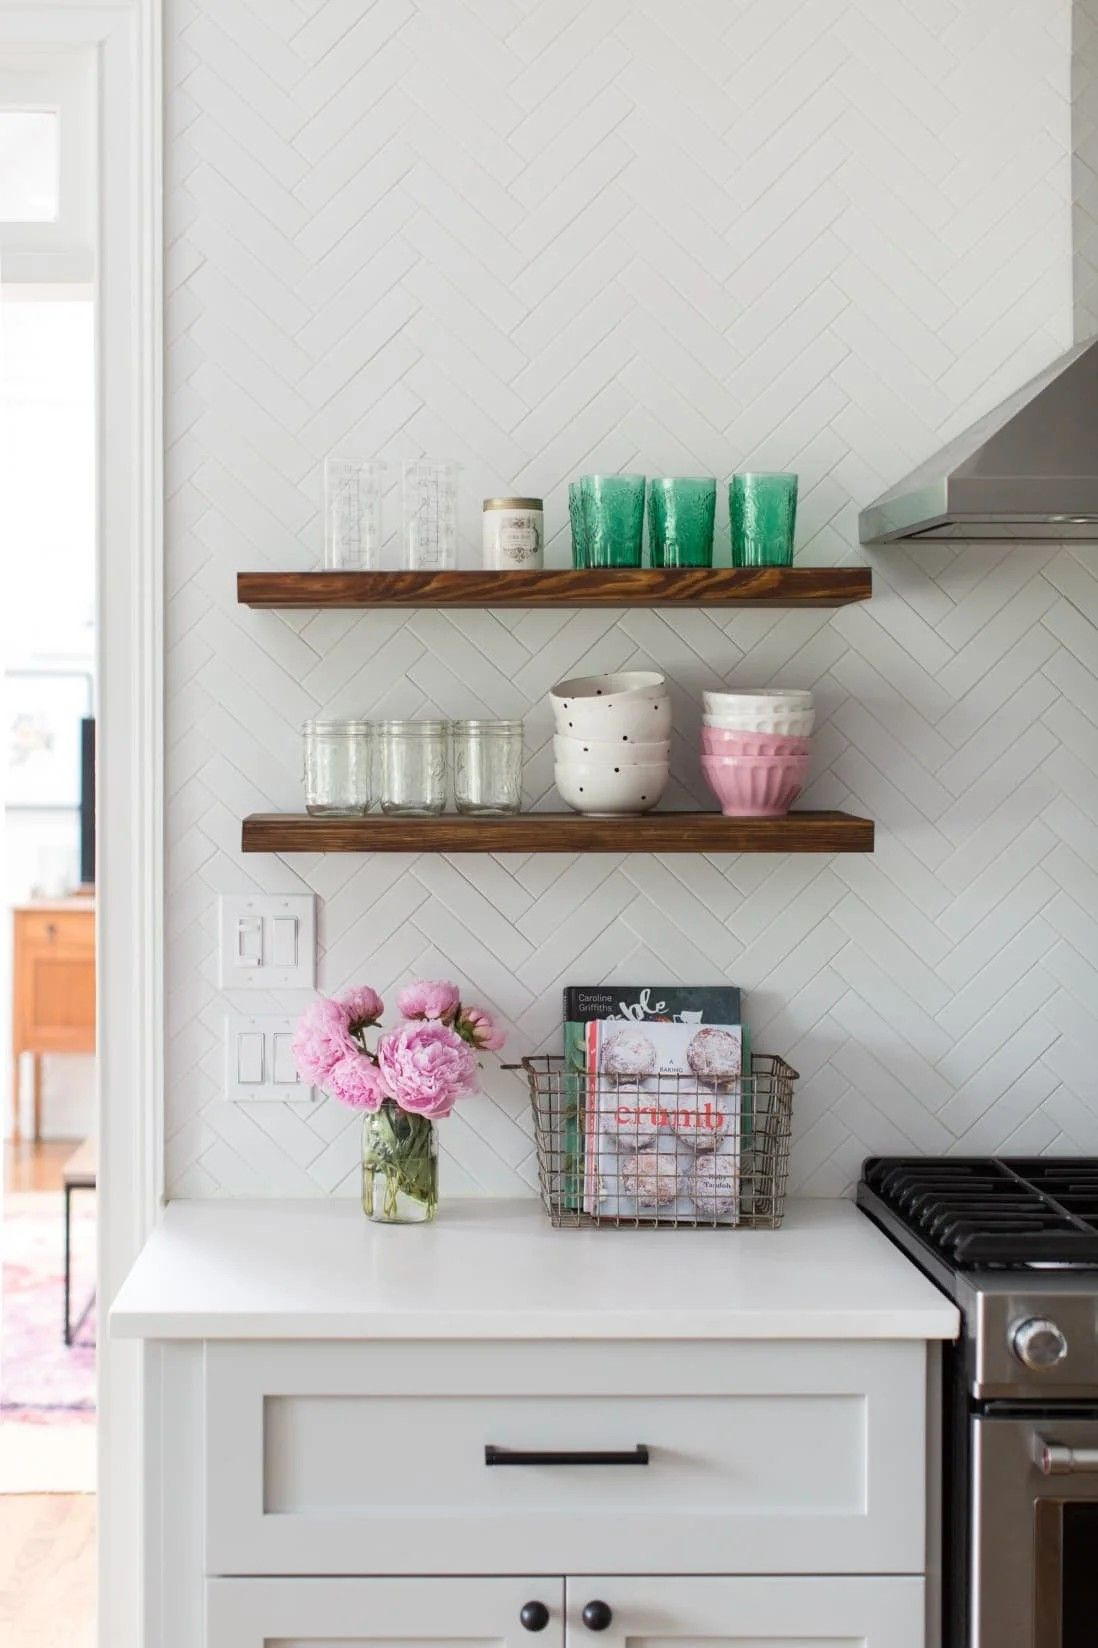 Pin By Akira Marie Designs On Luv Interior Design In 2020 Kitchen Cabinet Shelves Modern Farmhouse Dining Room Best Kitchen Countertops